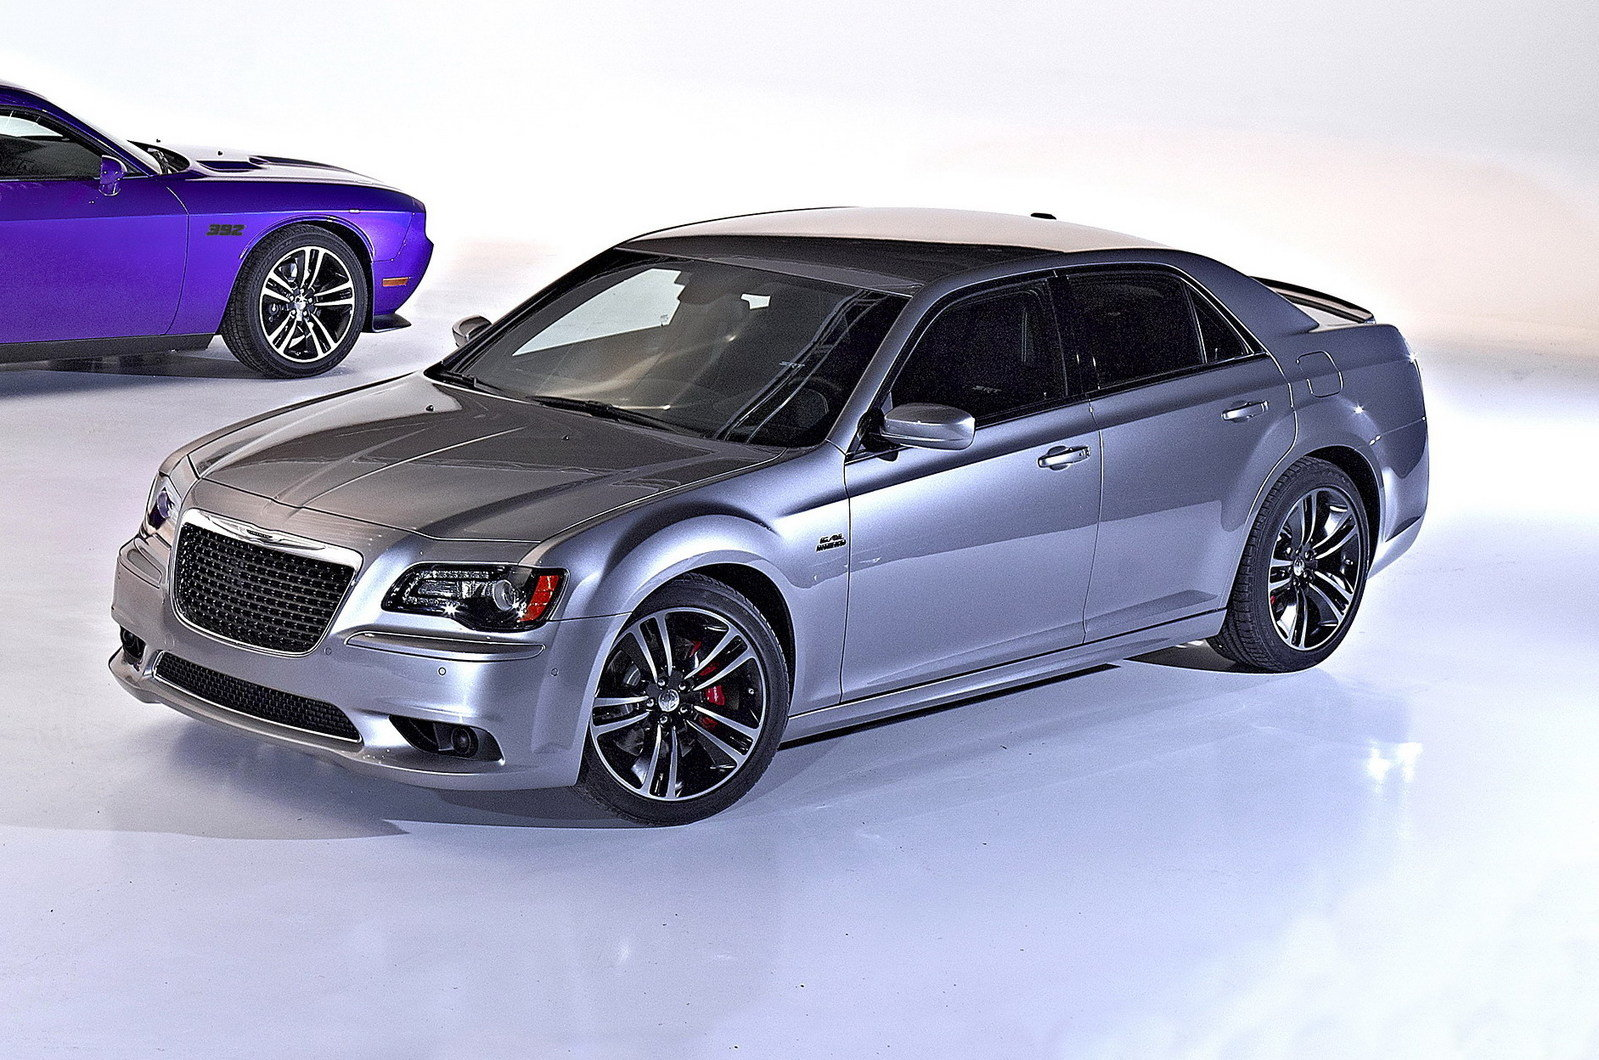 2013 chrysler 300 srt8 core review top speed. Black Bedroom Furniture Sets. Home Design Ideas